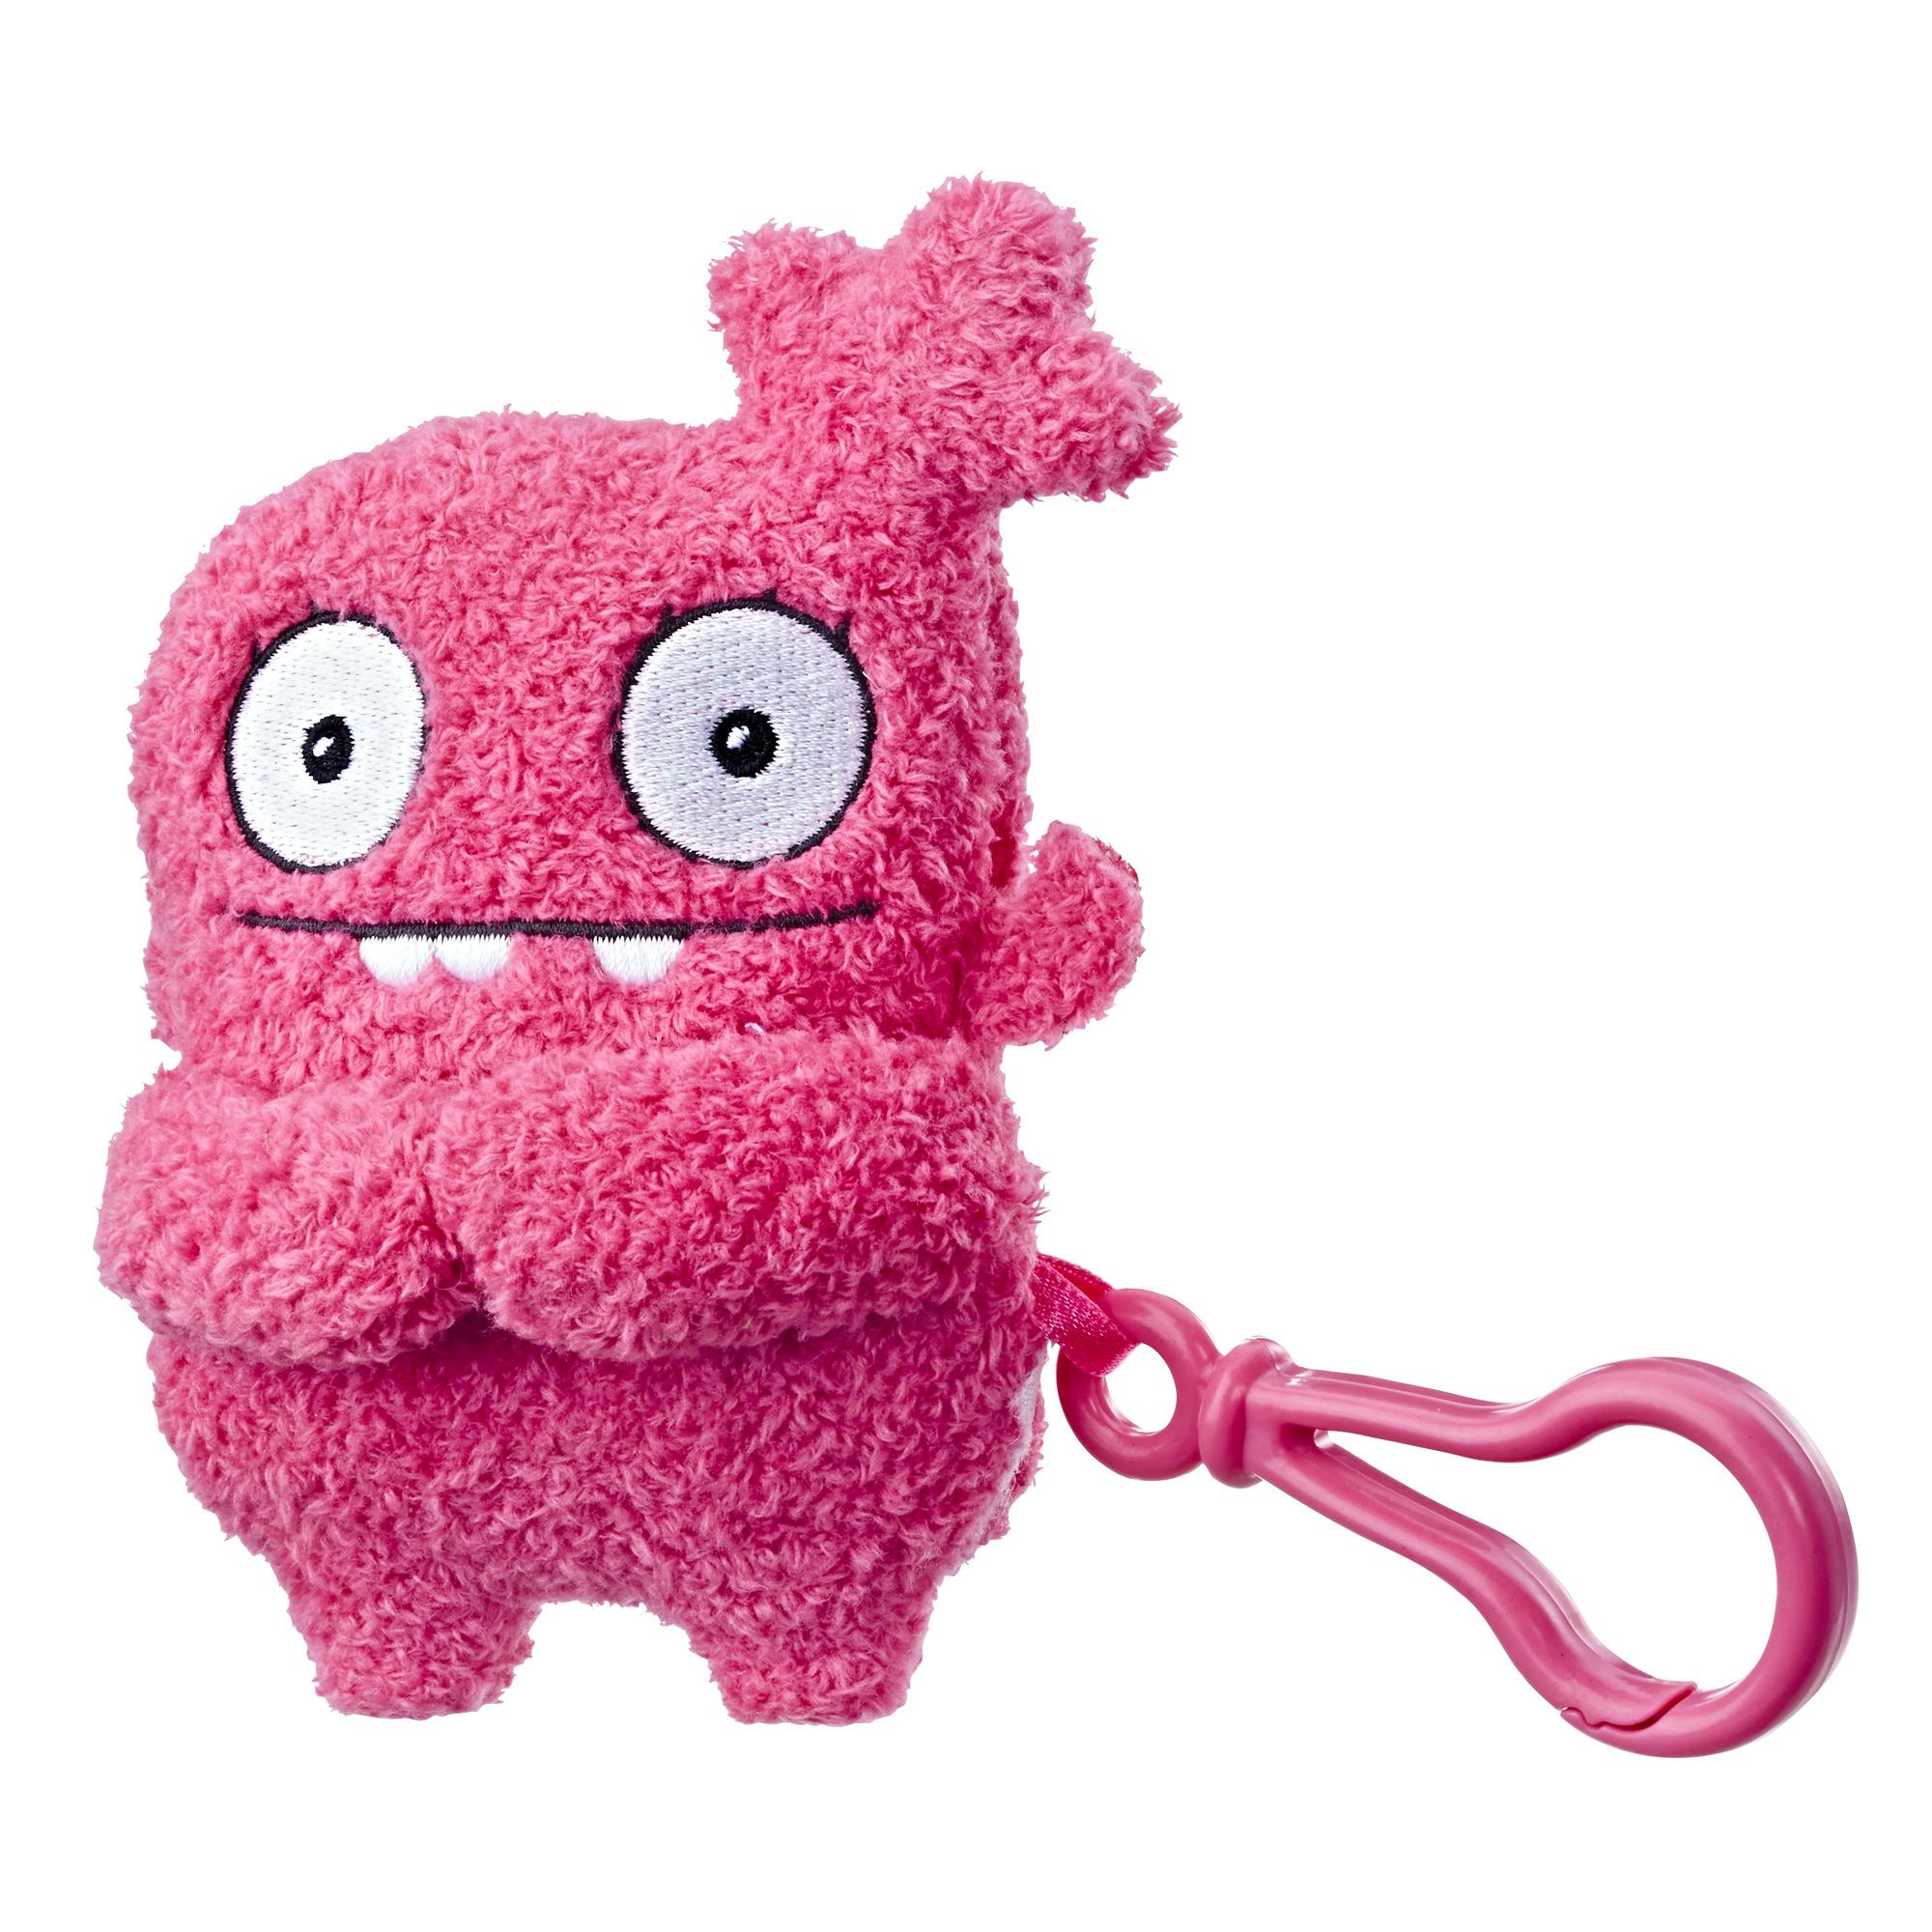 UglyDolls Moxy To-Go Stuffed Plush Toy, 13,5 cm. tall